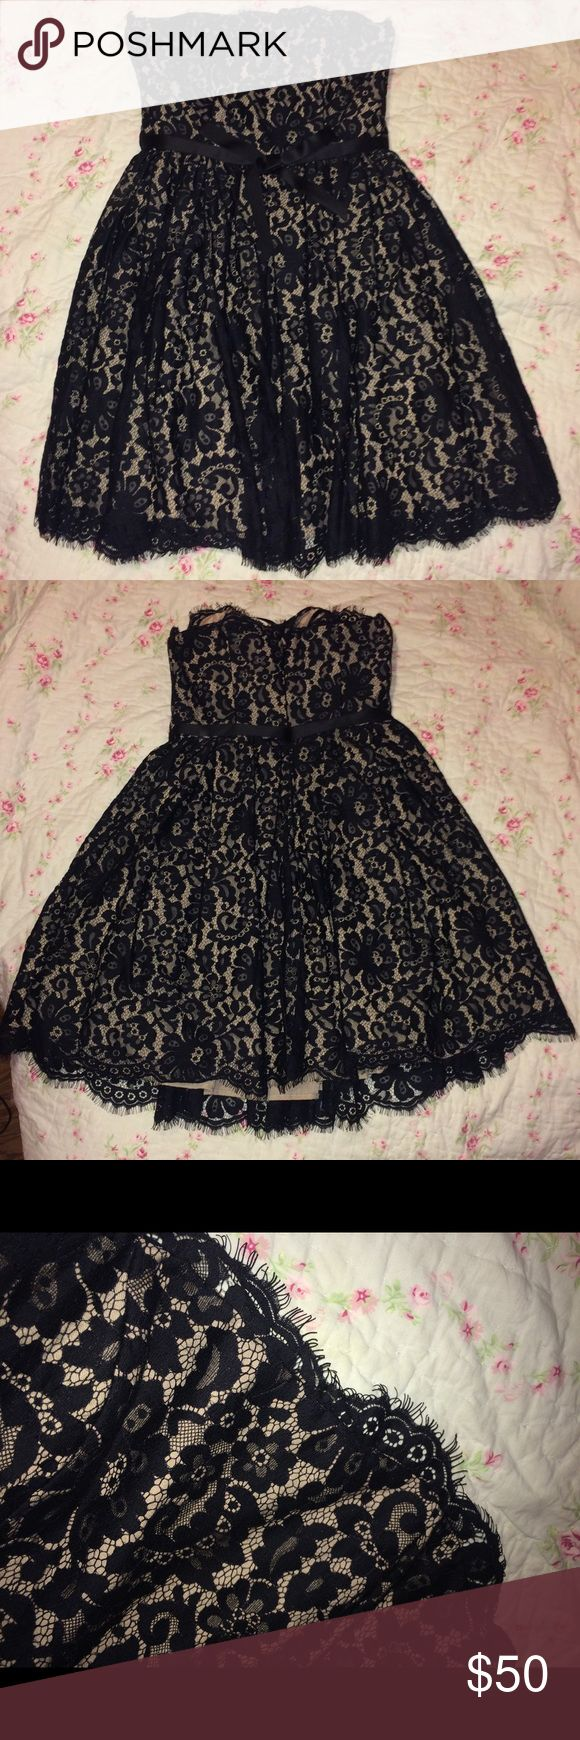 Elegant Black and Tan lace dress. Only worn once. But I don't have pictures with it on. Black and Tan lace dress with bra like clip on the inside to adjust the size. Also has a prettied ribbon that goes from each side of the zipper and ties in the front. Neiman Marcus Dresses